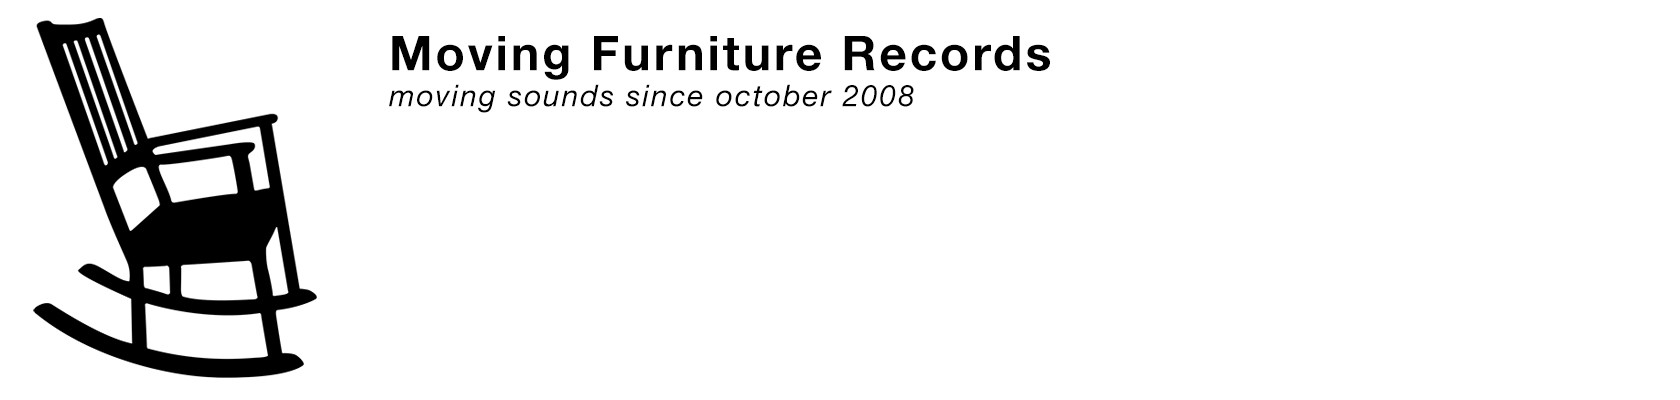 Moving Furniture Records